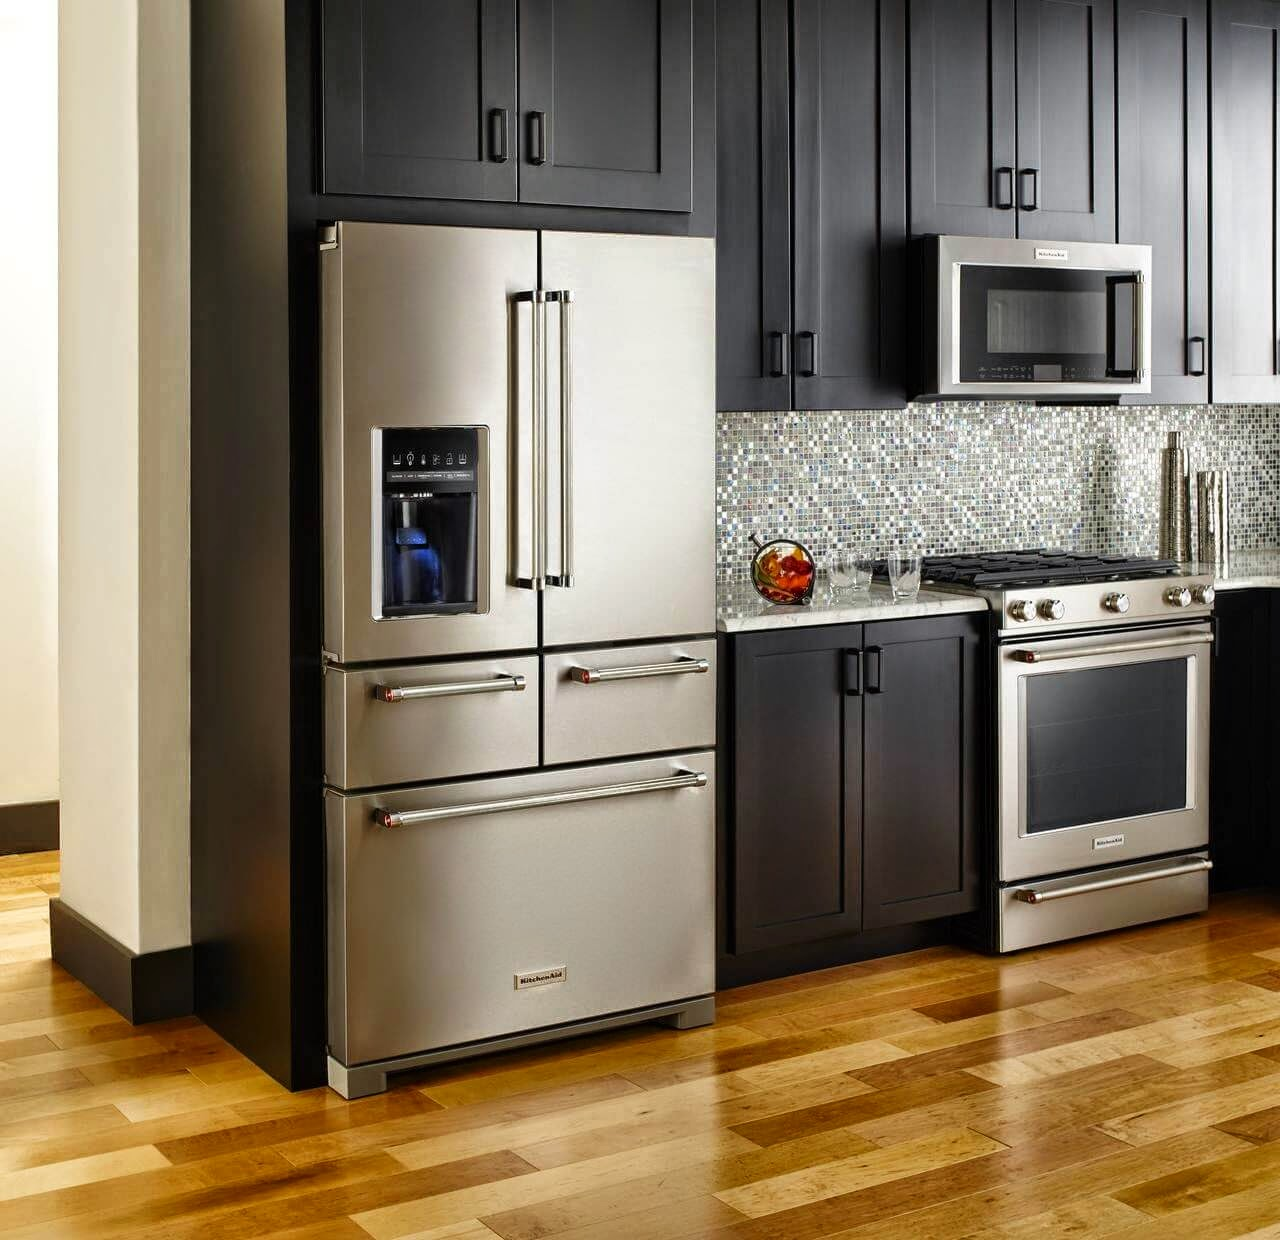 ALL NEW 2015 5 Door KitchenAid Refrigerator